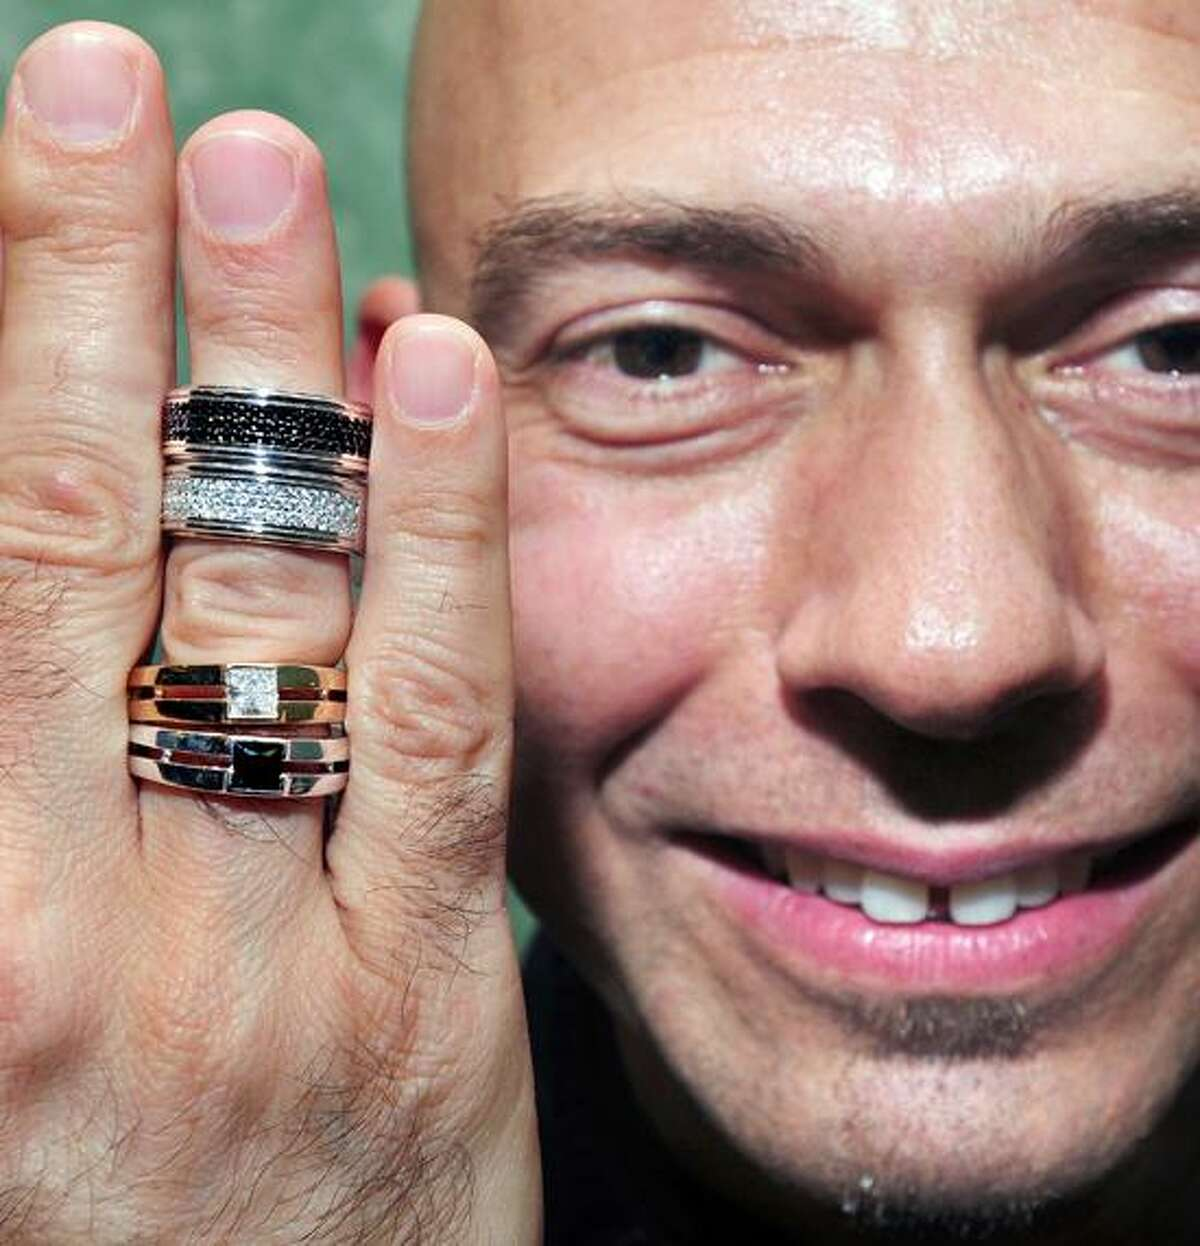 Jewelry designer Rony Tennenbaum shows off a set of pave bands from the LVOE collection (top) and a set of diamond solitaire rings (bottom) at Cellini Jewelers in West Haven. They are designed for same sex couples. Photo by Arnold Gold/New Haven Register